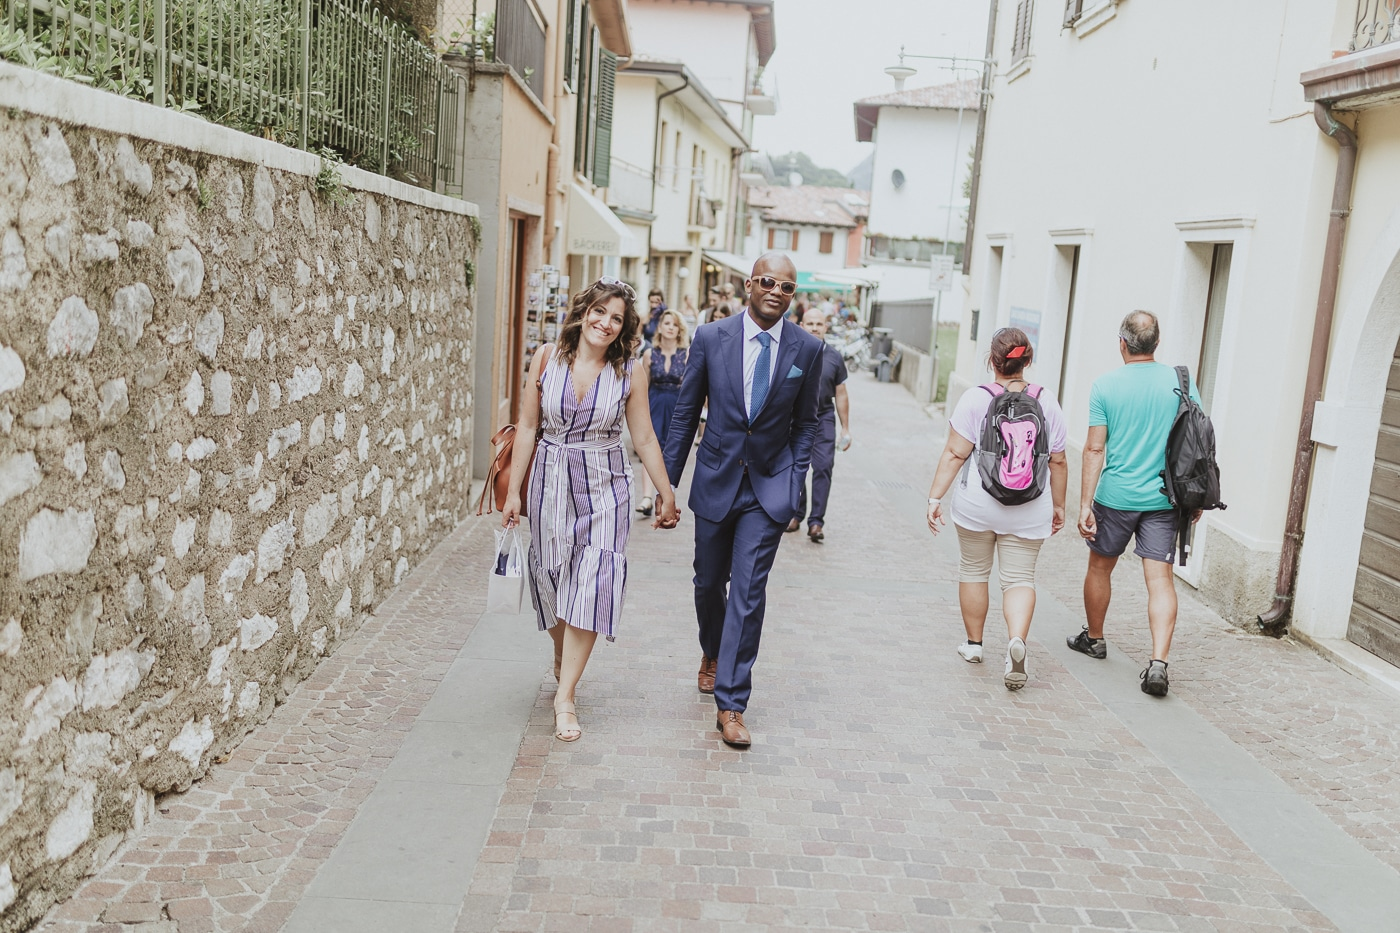 Woman in stripey dress and man in sunglasses and blue suit walking along a road in lake garda italy amongst other wedding guests and tourists alongside a traditonal stone wall by Joshua Wyborn